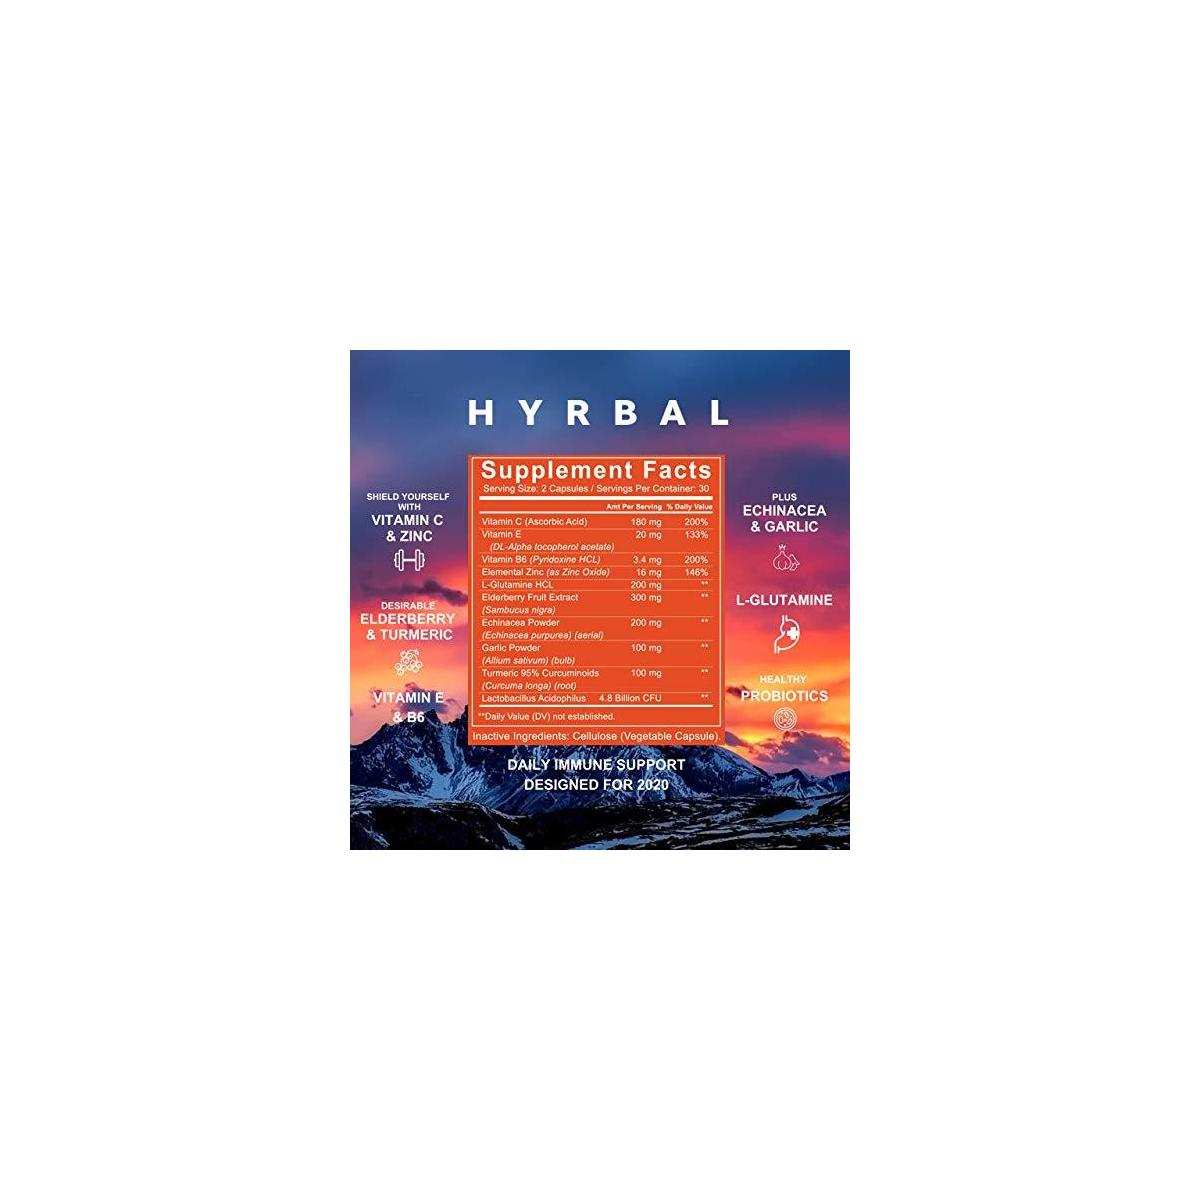 HYRBAL Defend Immune Support - New for 2020! Premium Daily Emergency C Immune Support with Zinc - Best Immune Defense All-Natural Immunity Booster with Elderberries, L-Glutamine, Echinacea, Turmeric, Vitamin C and E